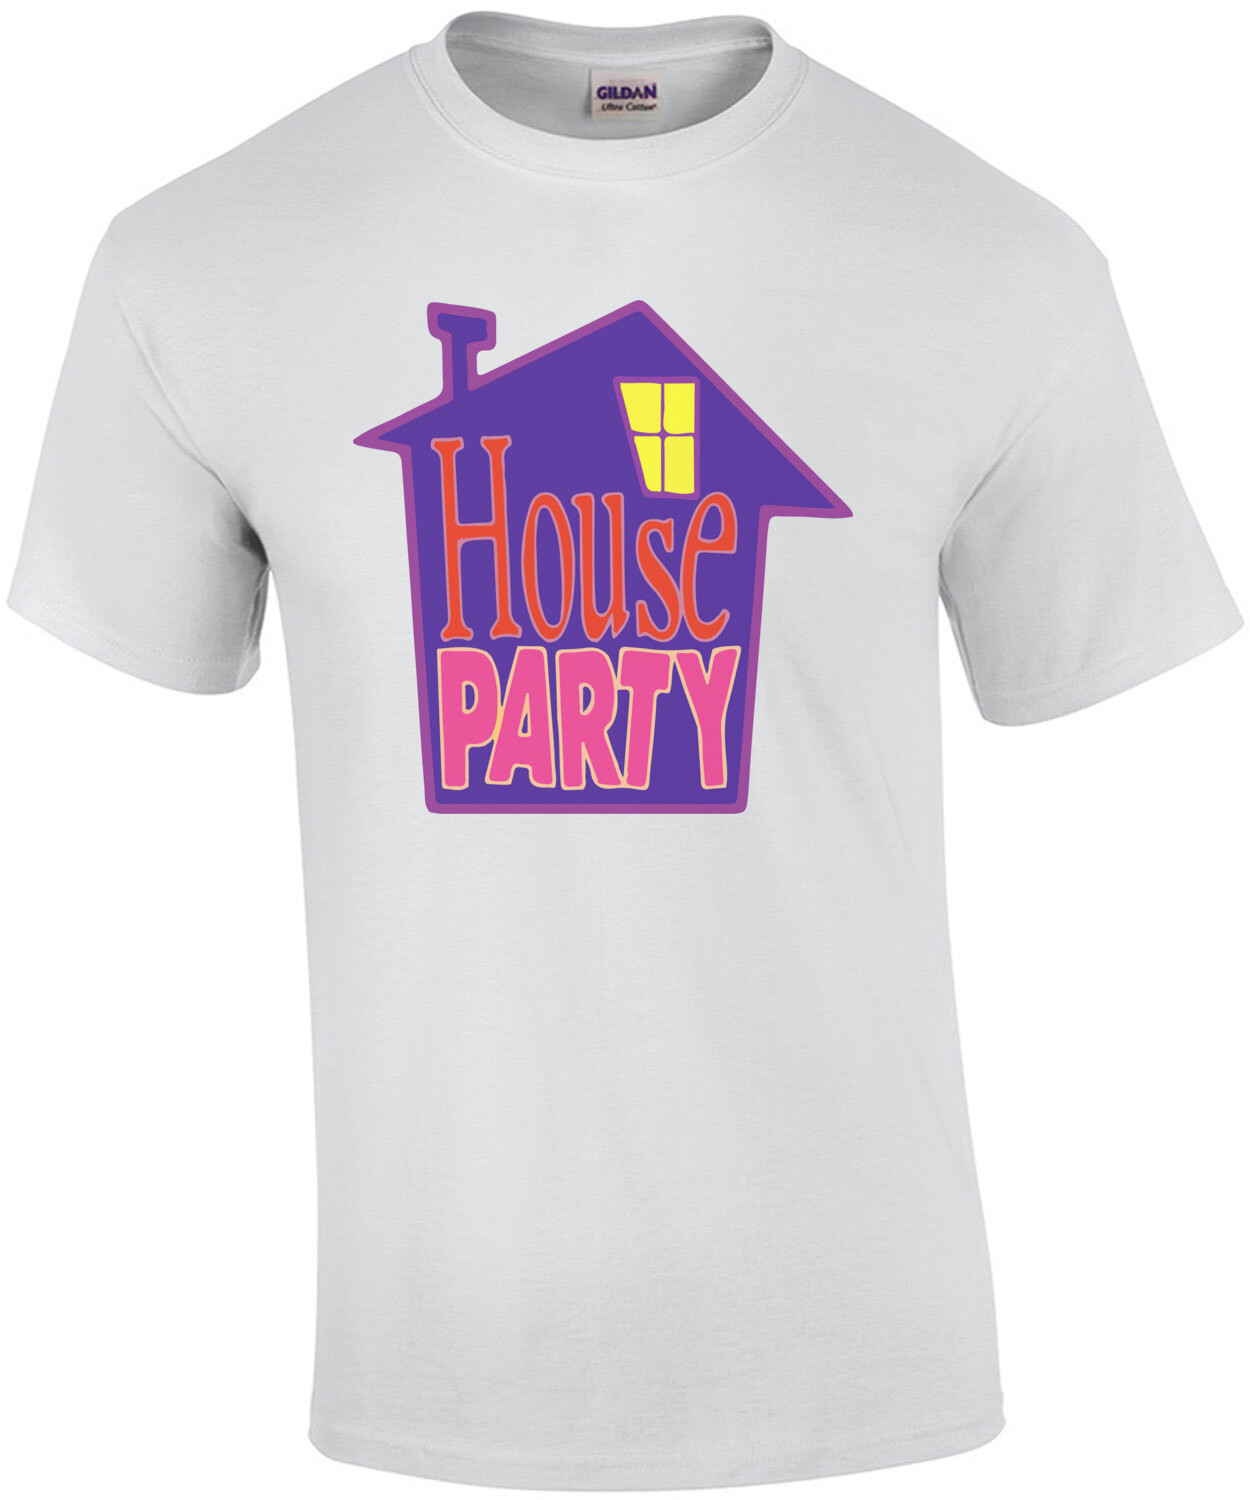 House Party - 90's T-Shirt